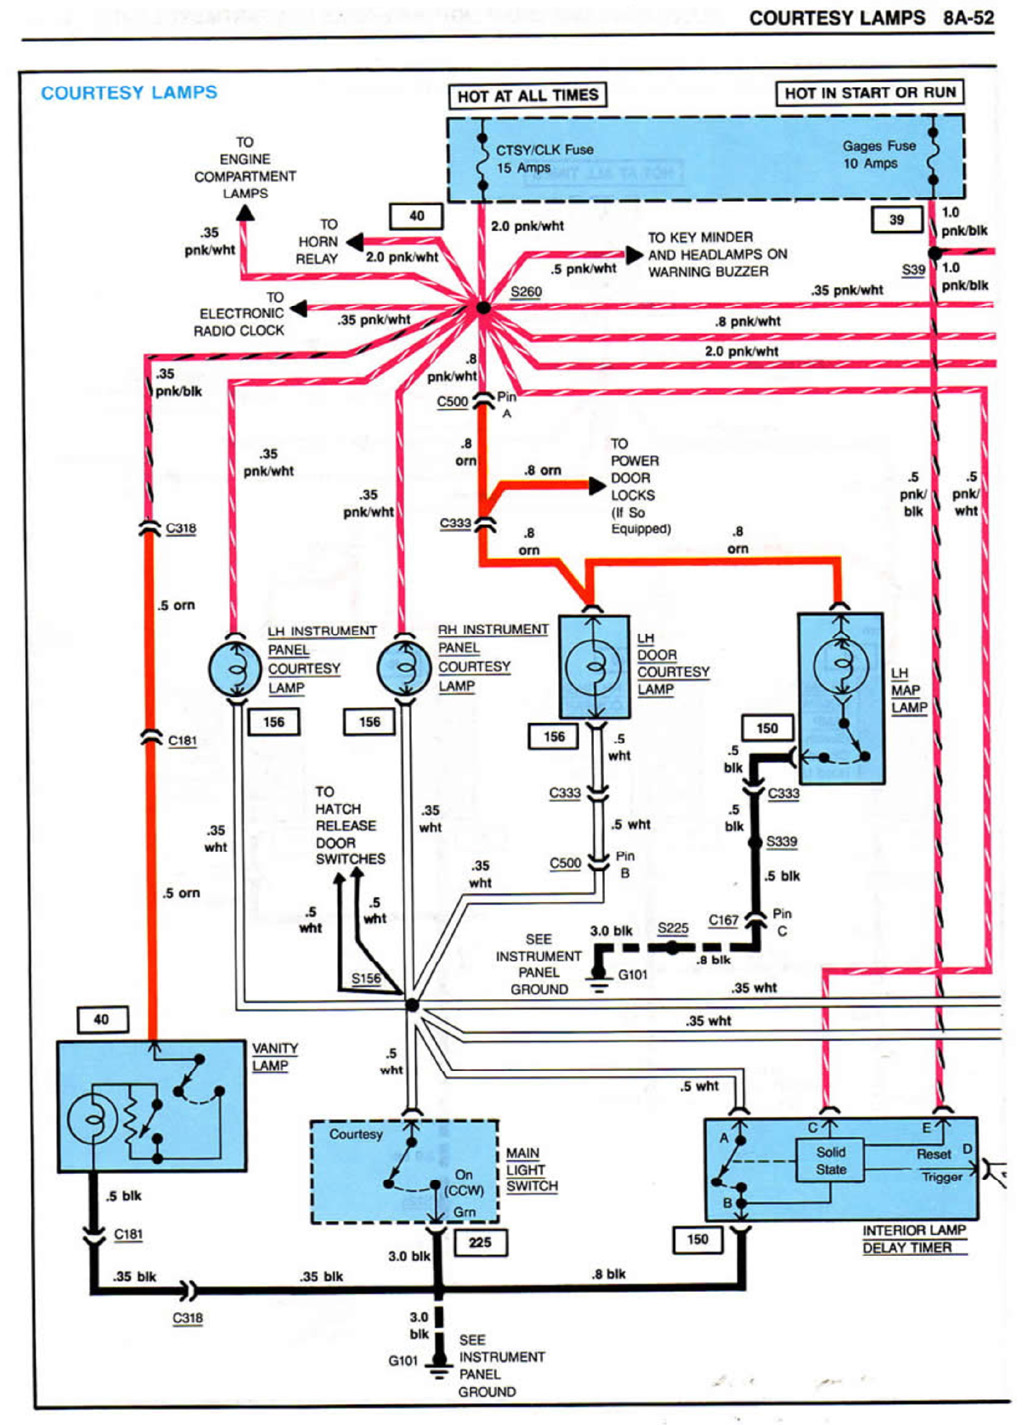 cavalier radio wiring diagram wiring diagram and schematic stereo wiring diagram 95 chevrolet diagrams and schematics